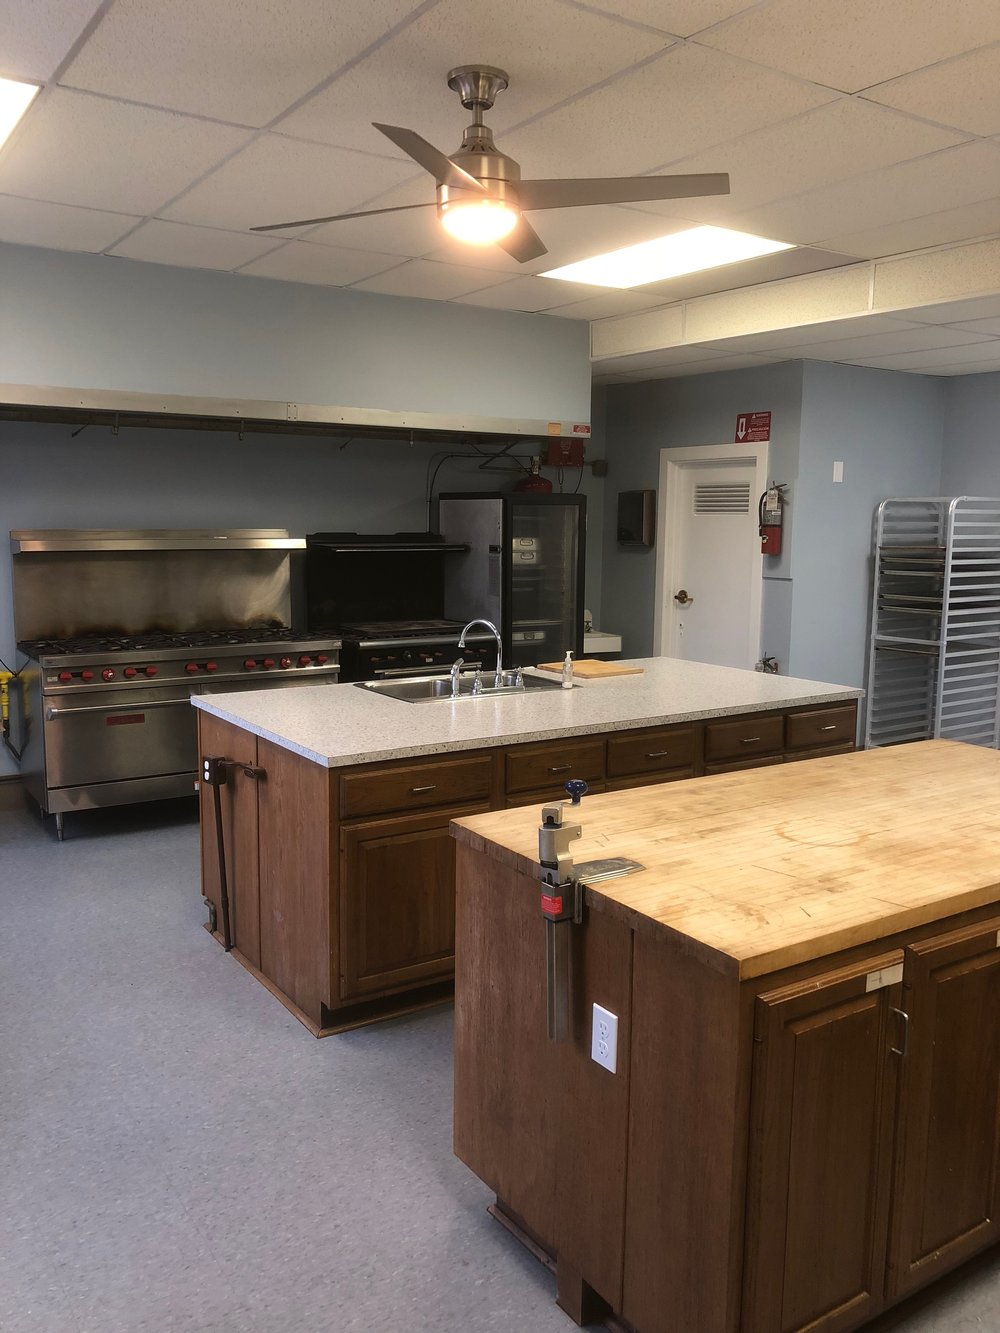 Commercial Kitchen Space For Rent In The Heart Of The Highlands